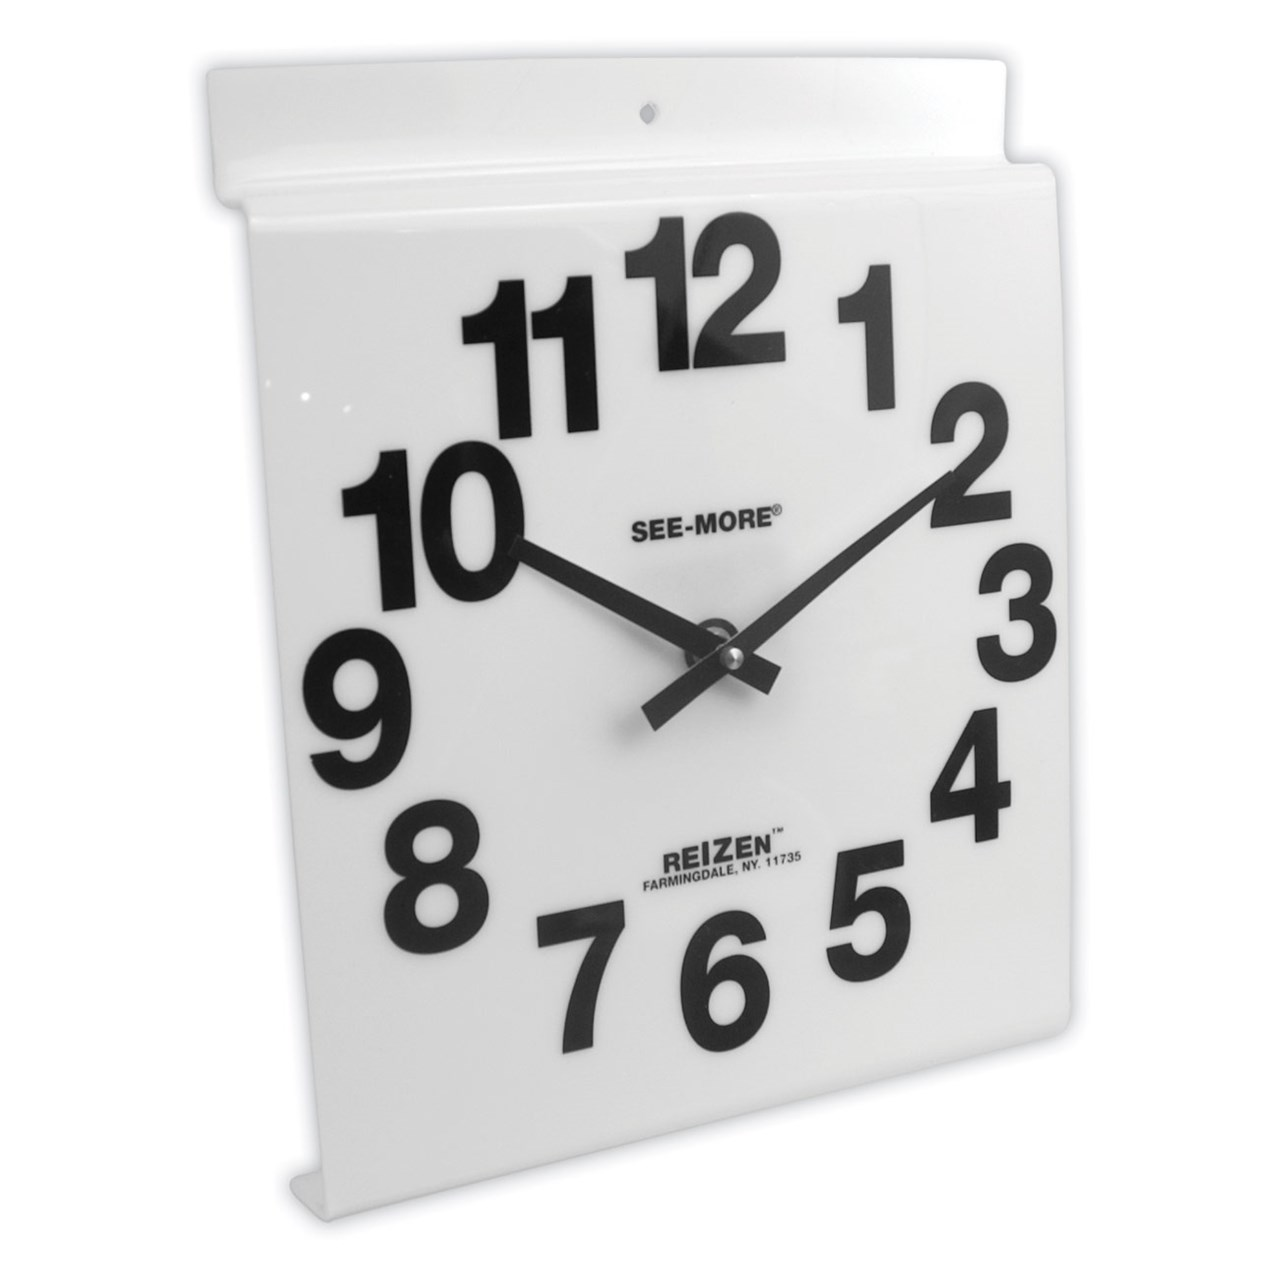 Giant View Low Vision Wall Clock- White Face